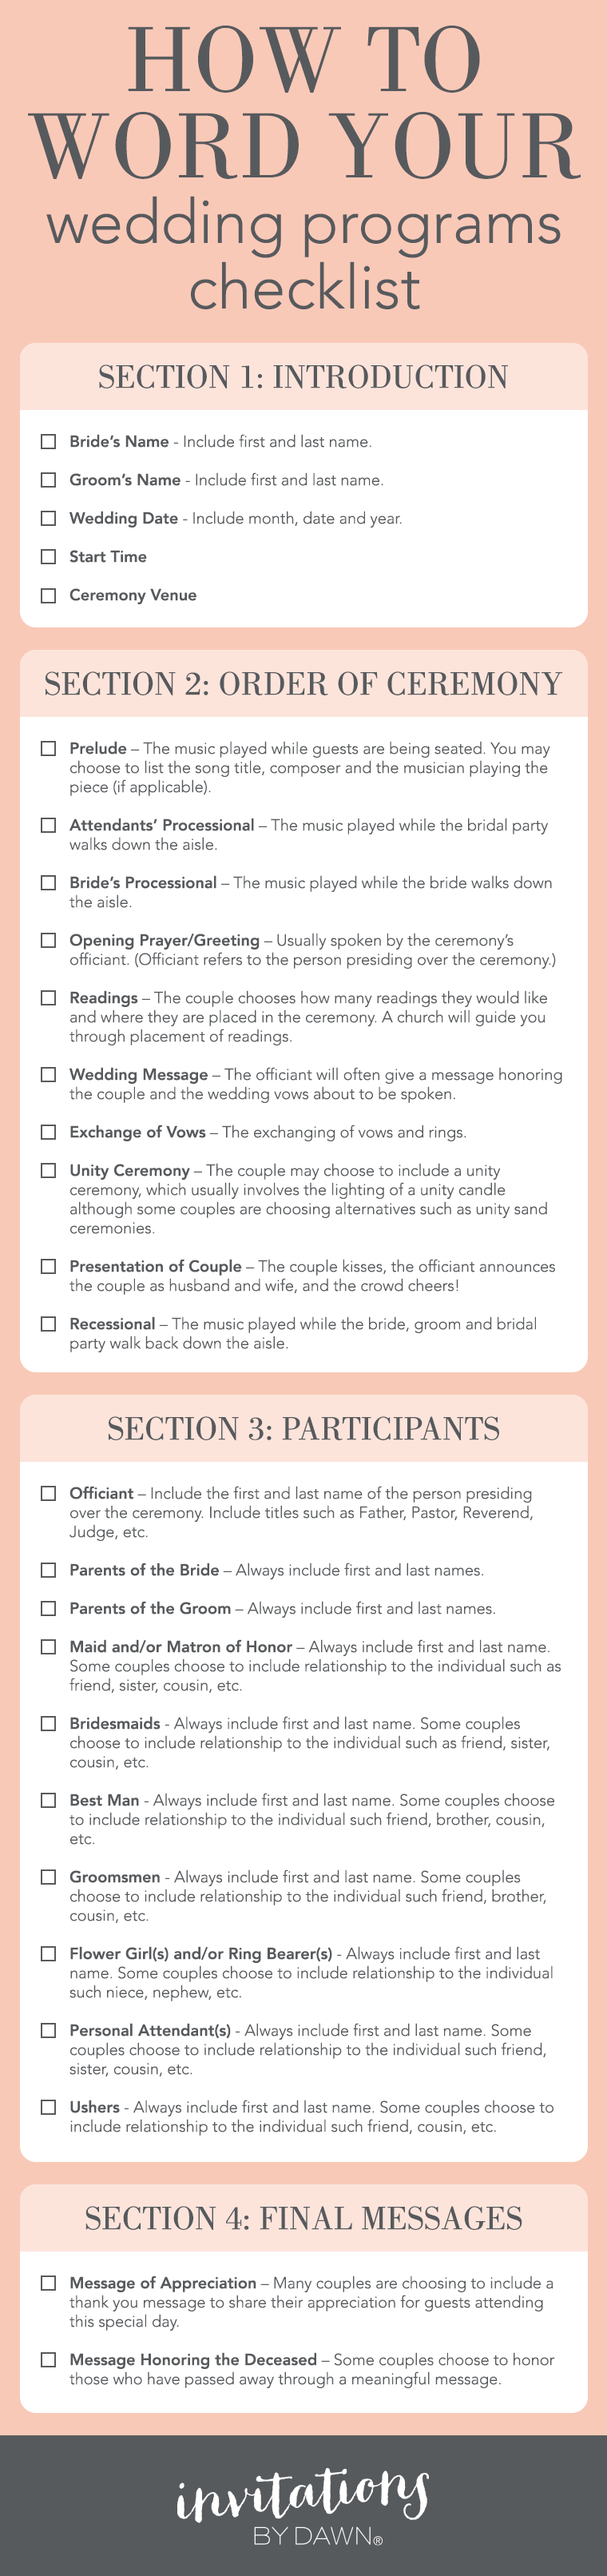 Wedding Program Checklist